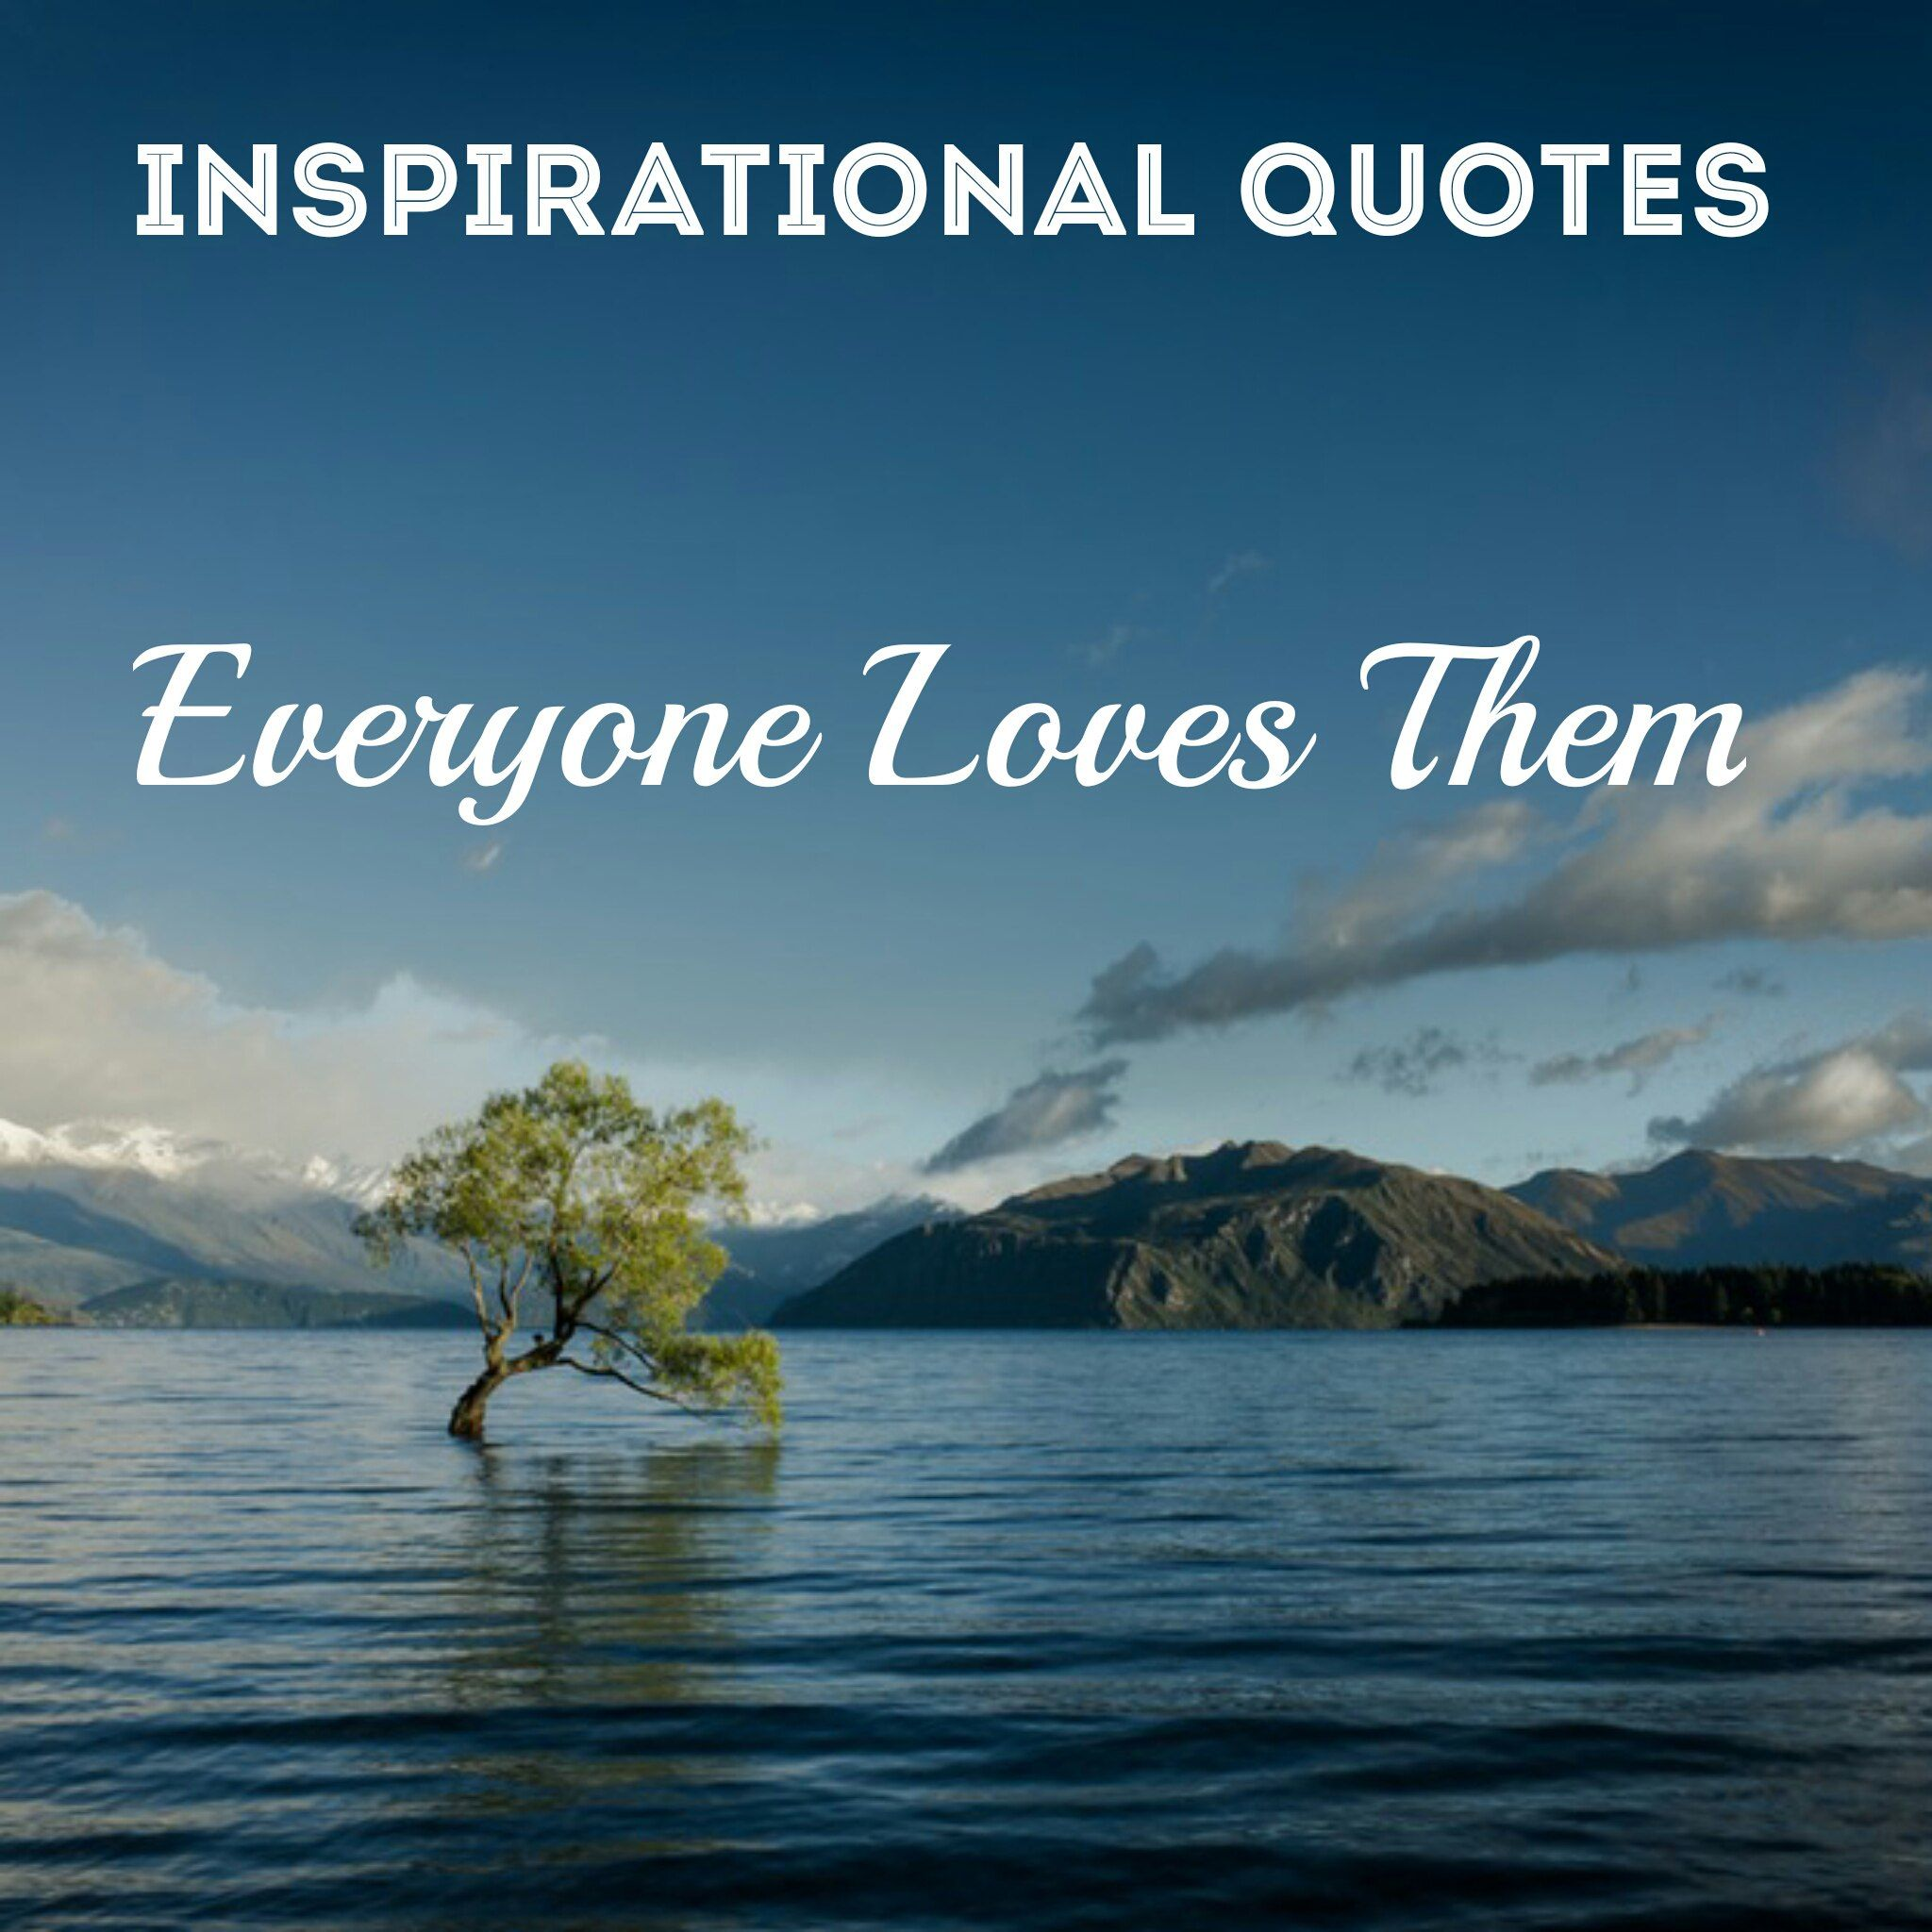 Inspirational Quotes 154 Best Inspirational Quotes & Sayings Of All Time